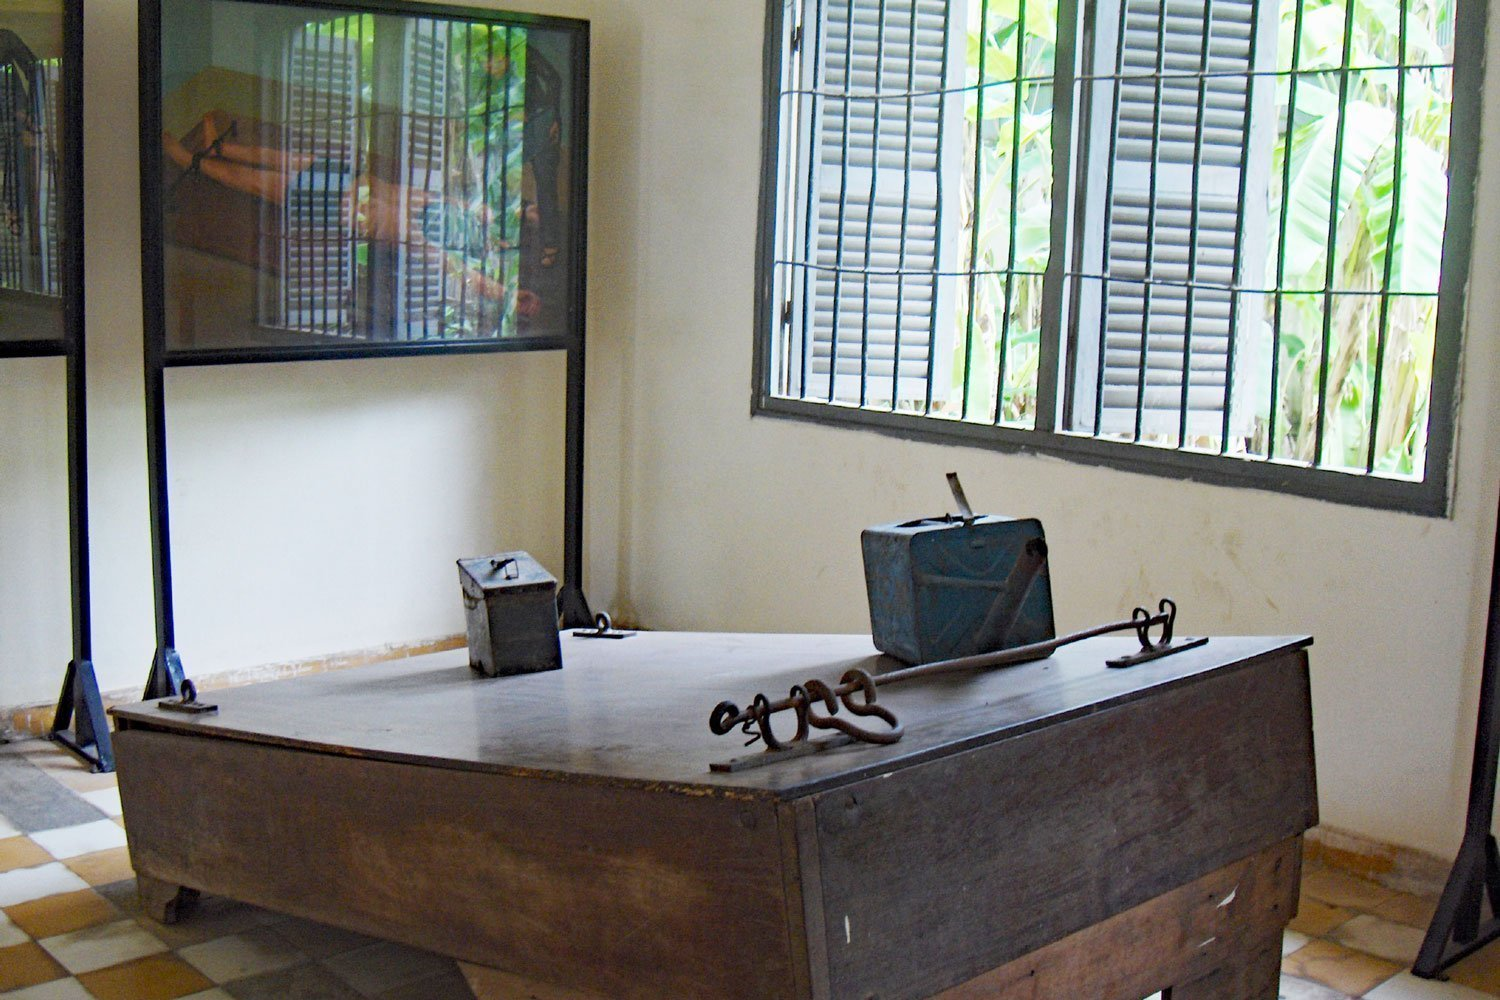 Images show how victims were tortured at Tuol Sleng Museum, Cambodia